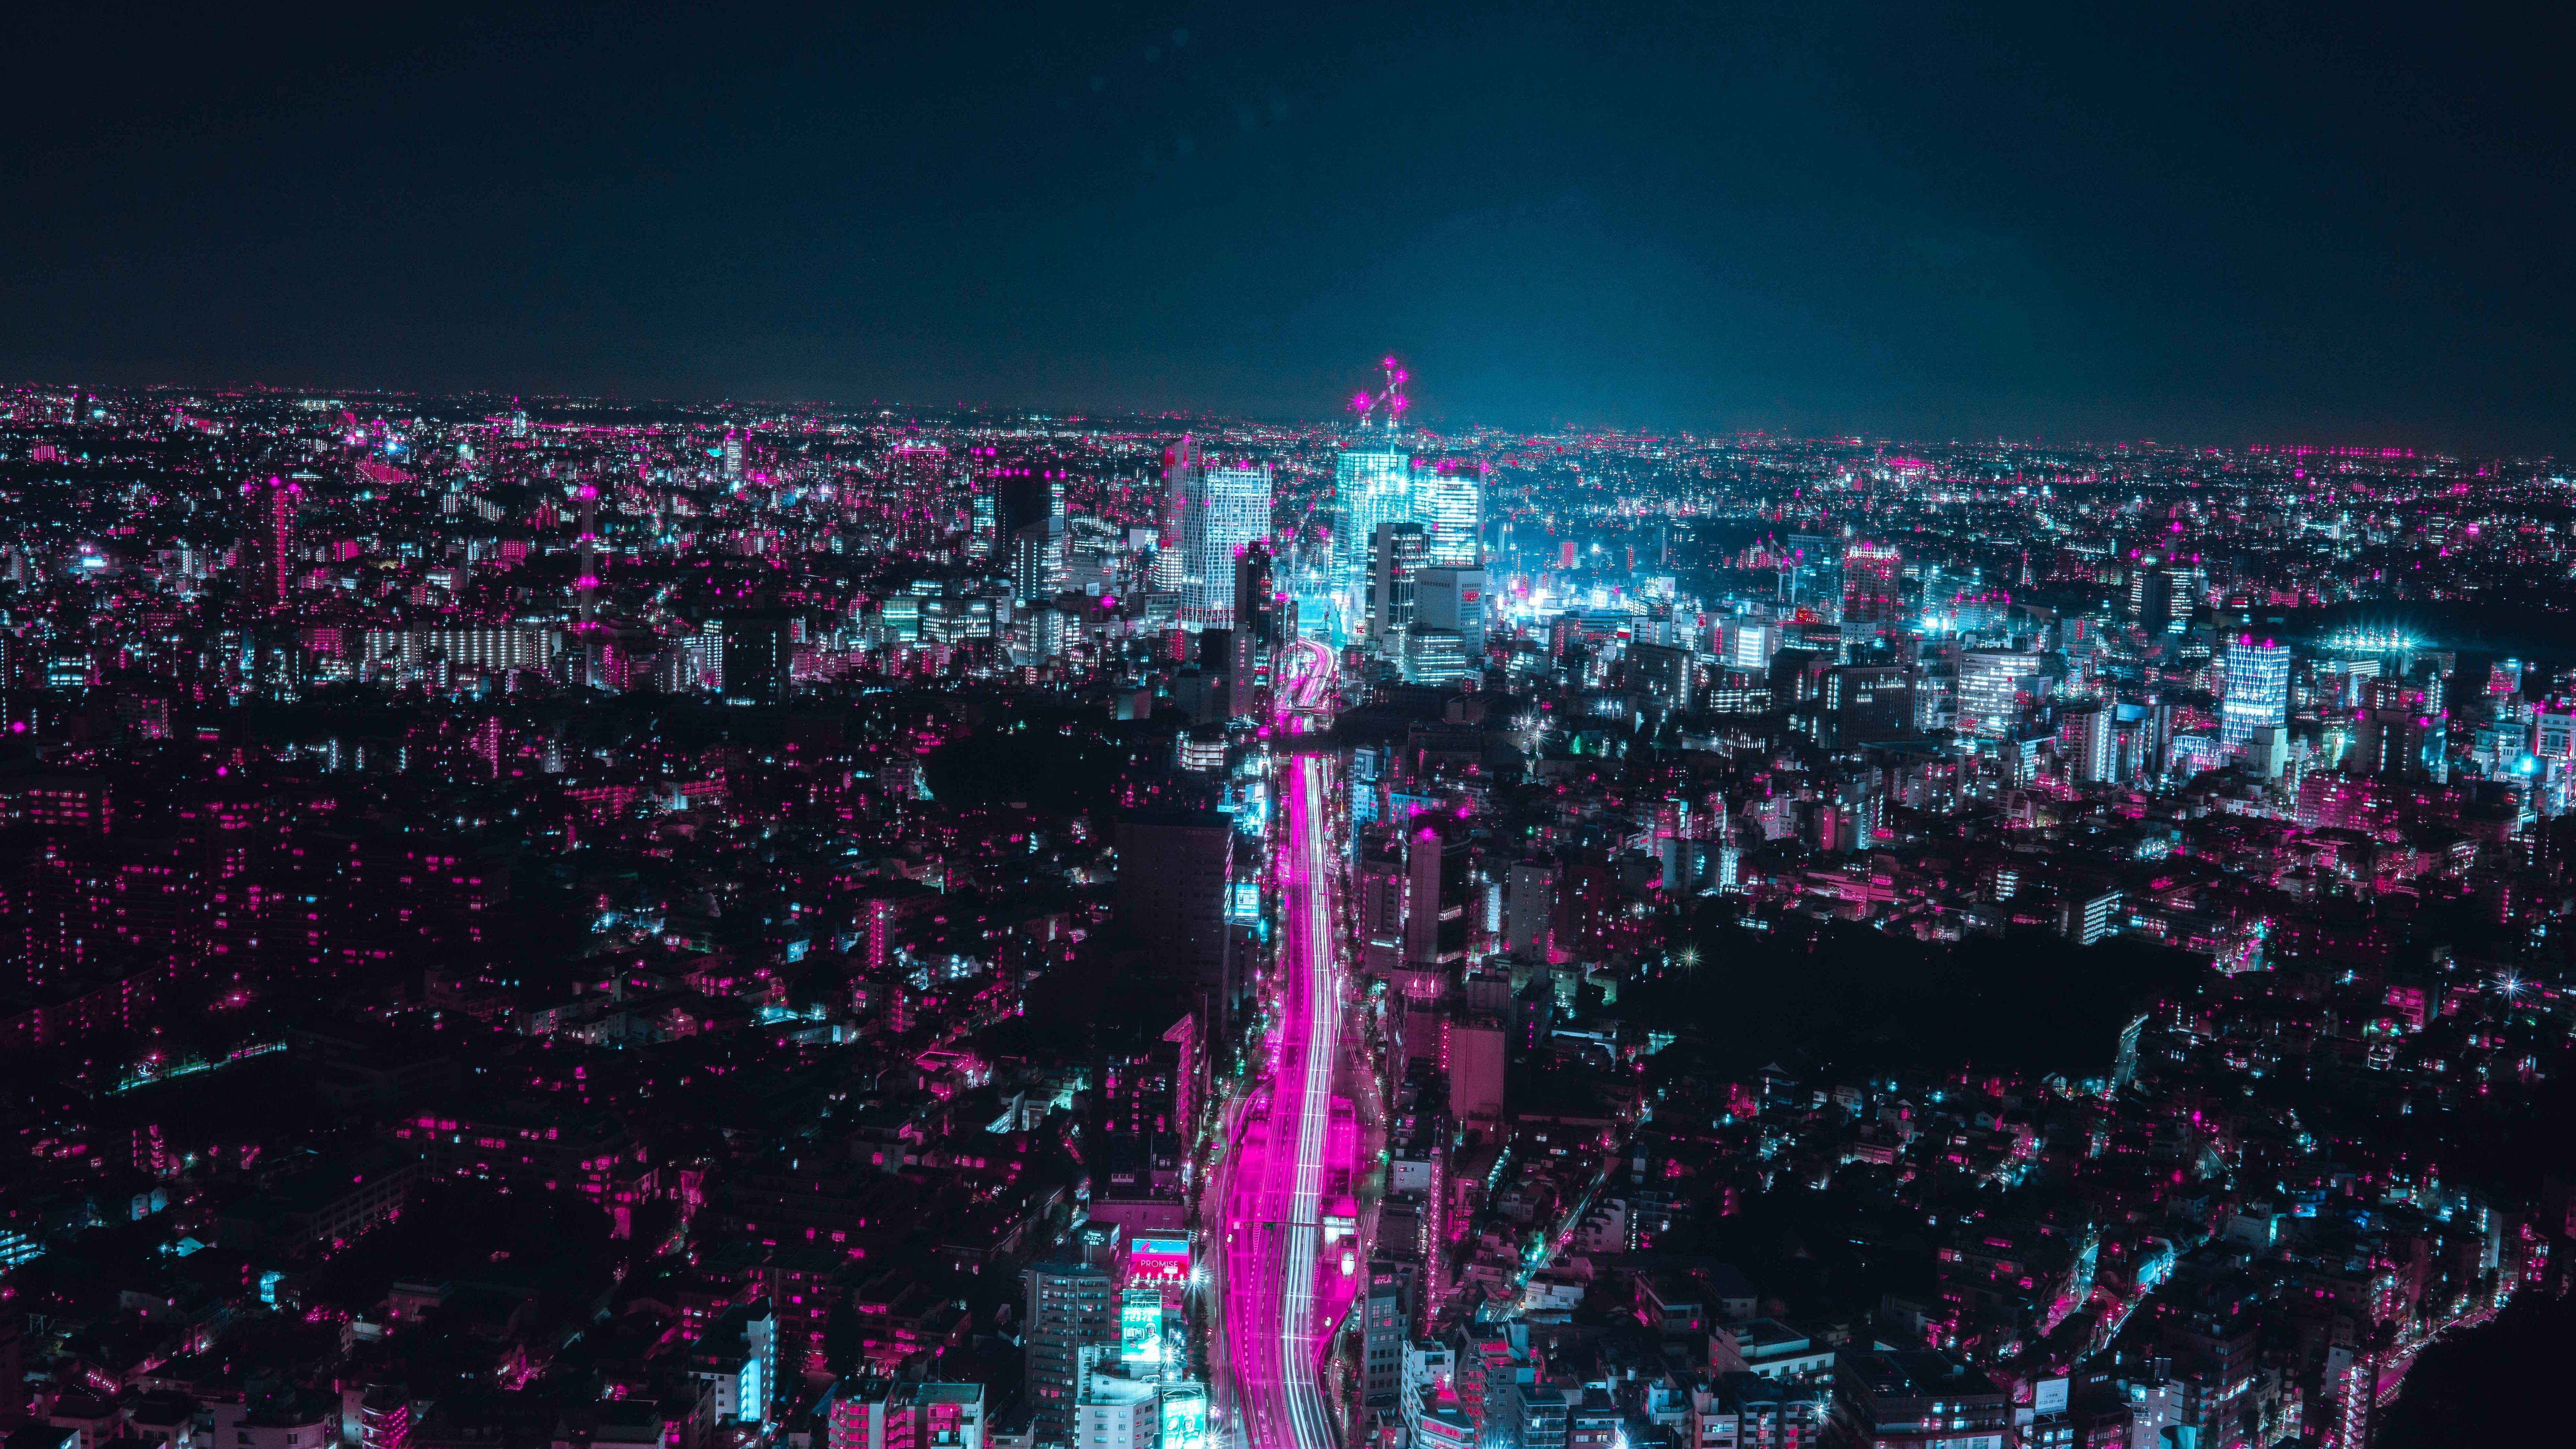 7680x4320 Japan Osaka 8k 8k Hd 4k Wallpapers Images Backgrounds Photos And Pictures